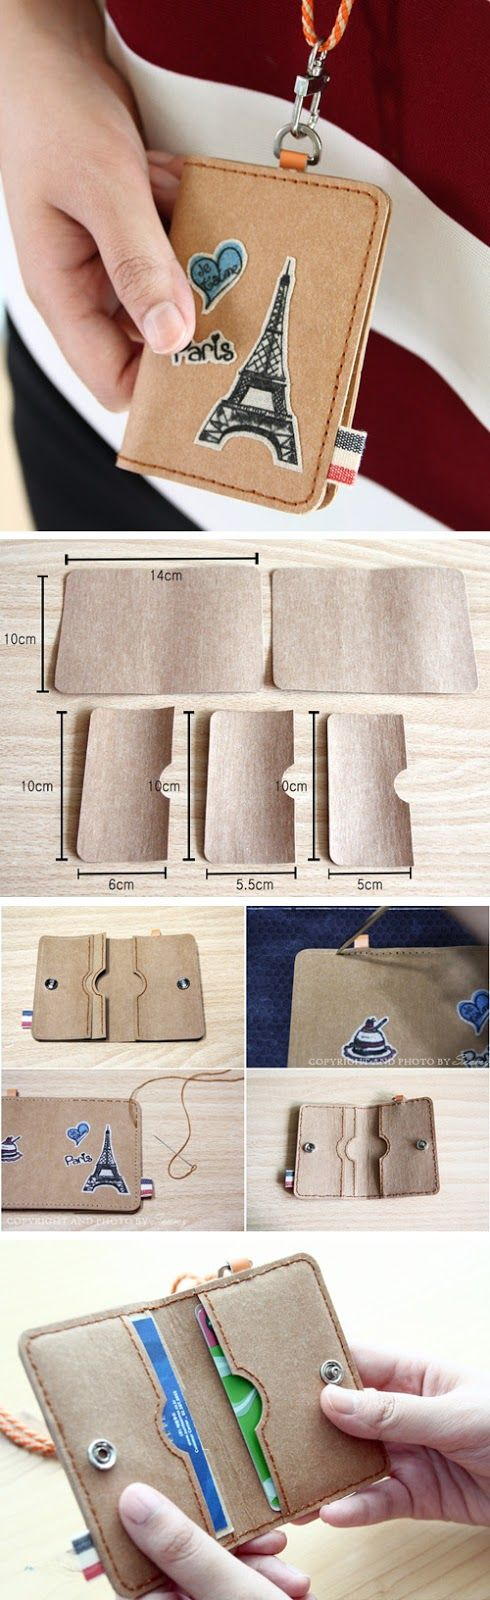 How to Make Easy Faux-Leather Gift Card Wallet. Cool DIY Ideas for Fun and Easy Crafts  http://www.handmadiya.com/2016/10/gift-card-wallet-diy-tutorial.html